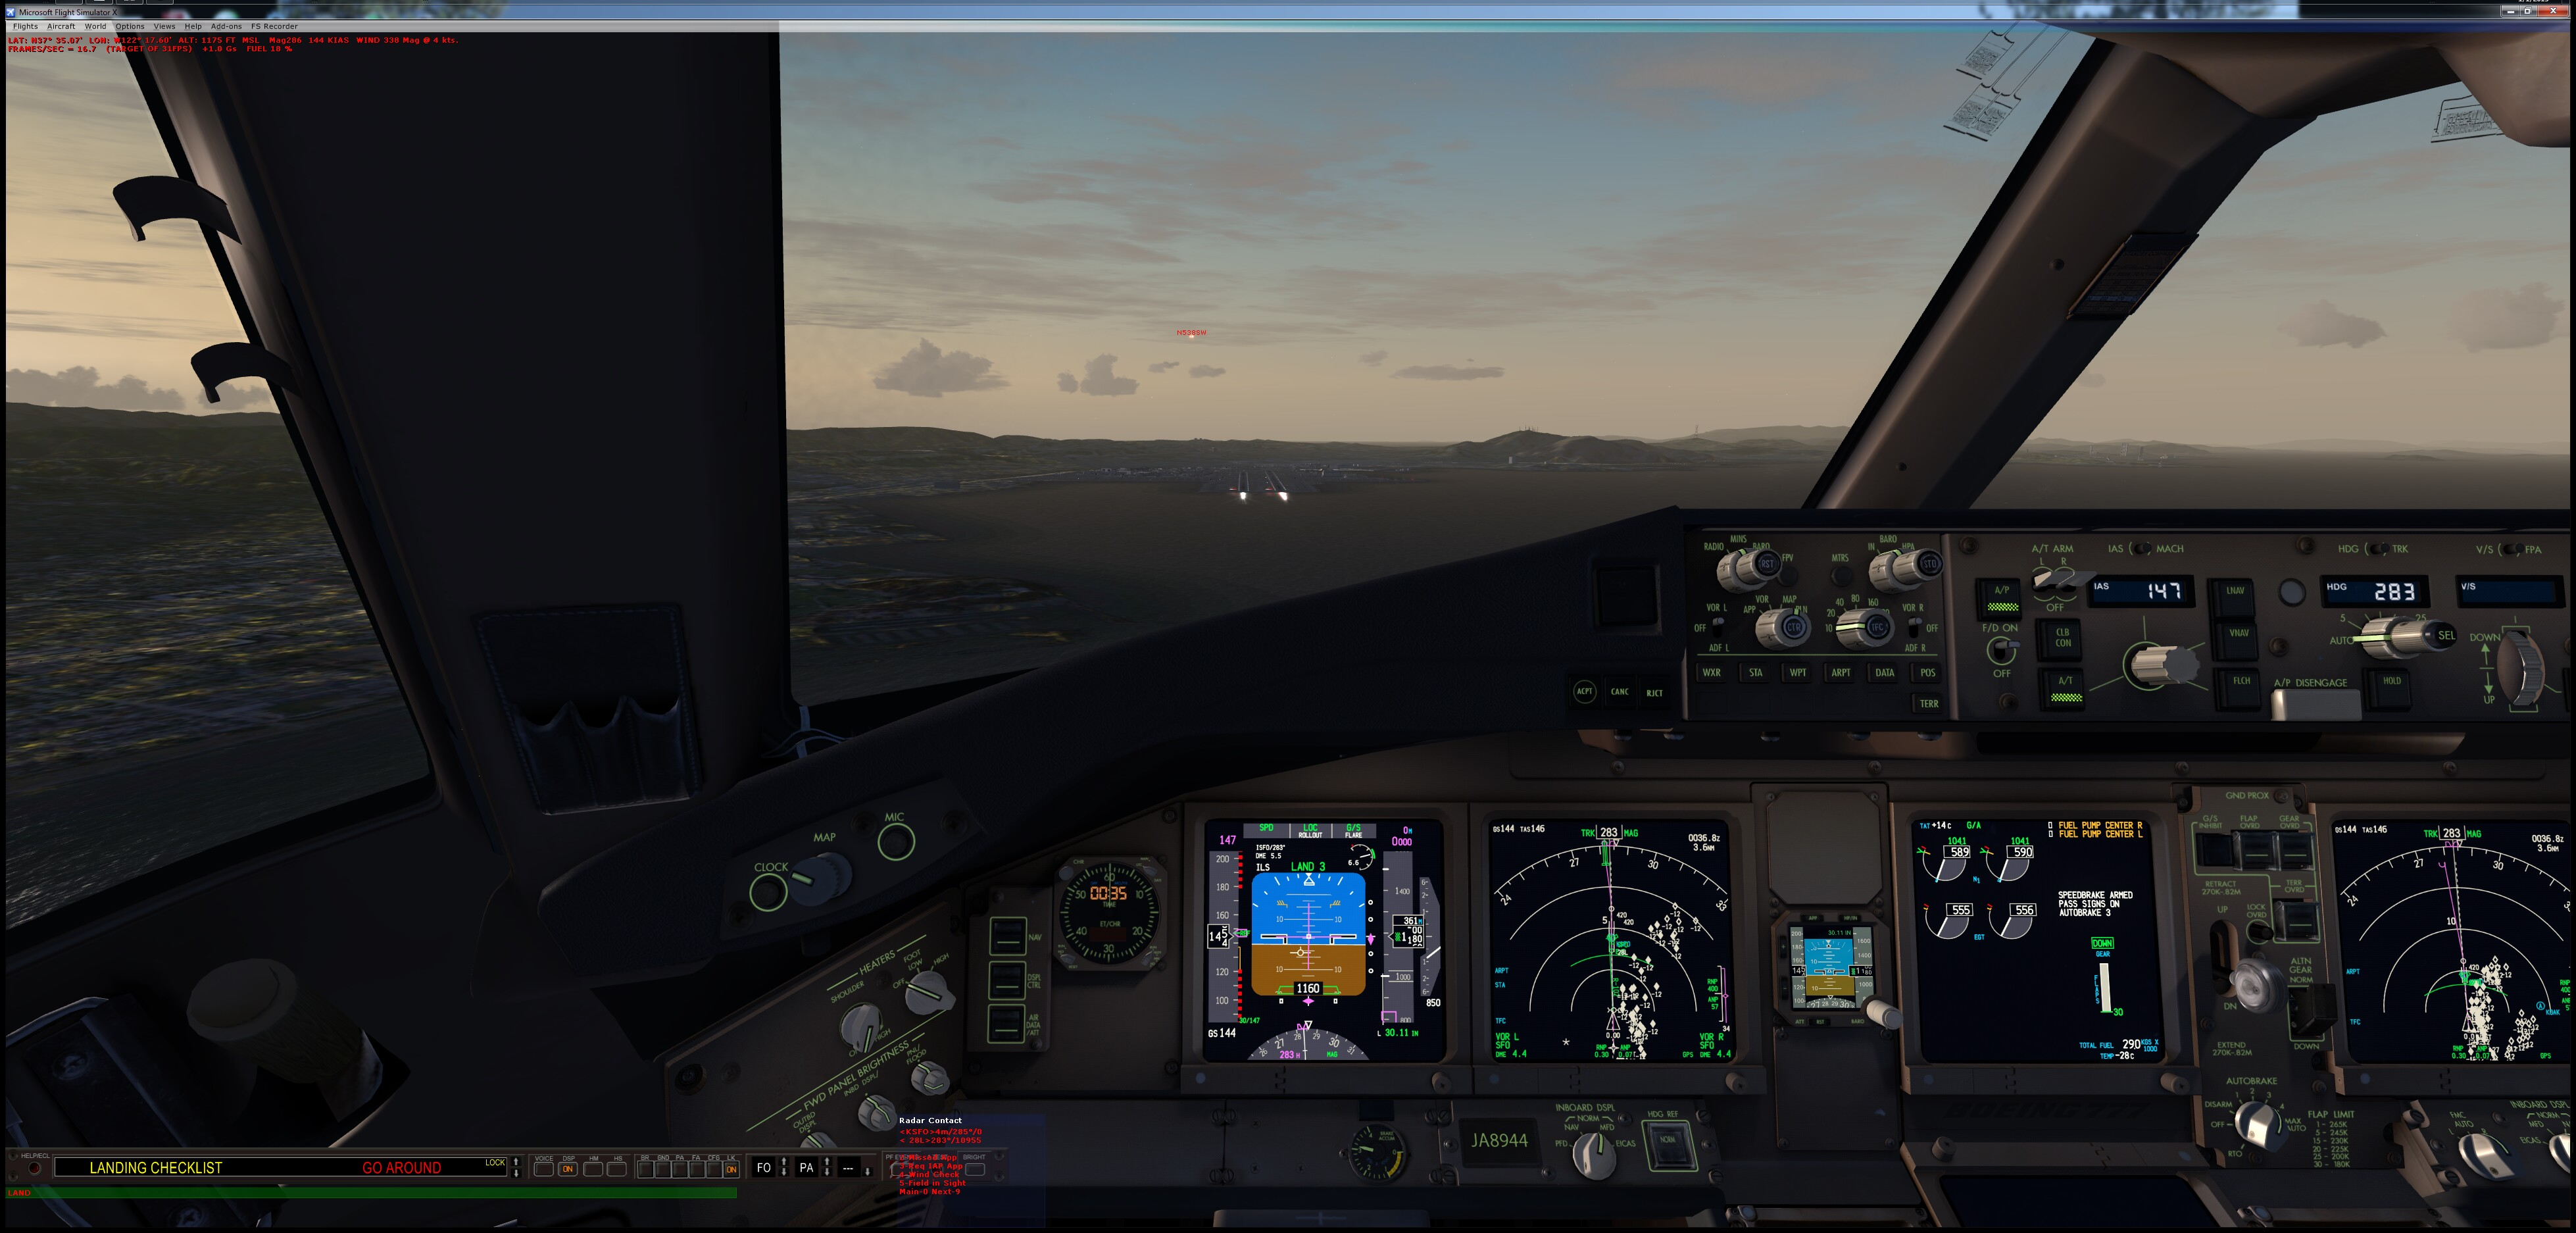 ScreenshotsRJTT-KSFO-36.jpg